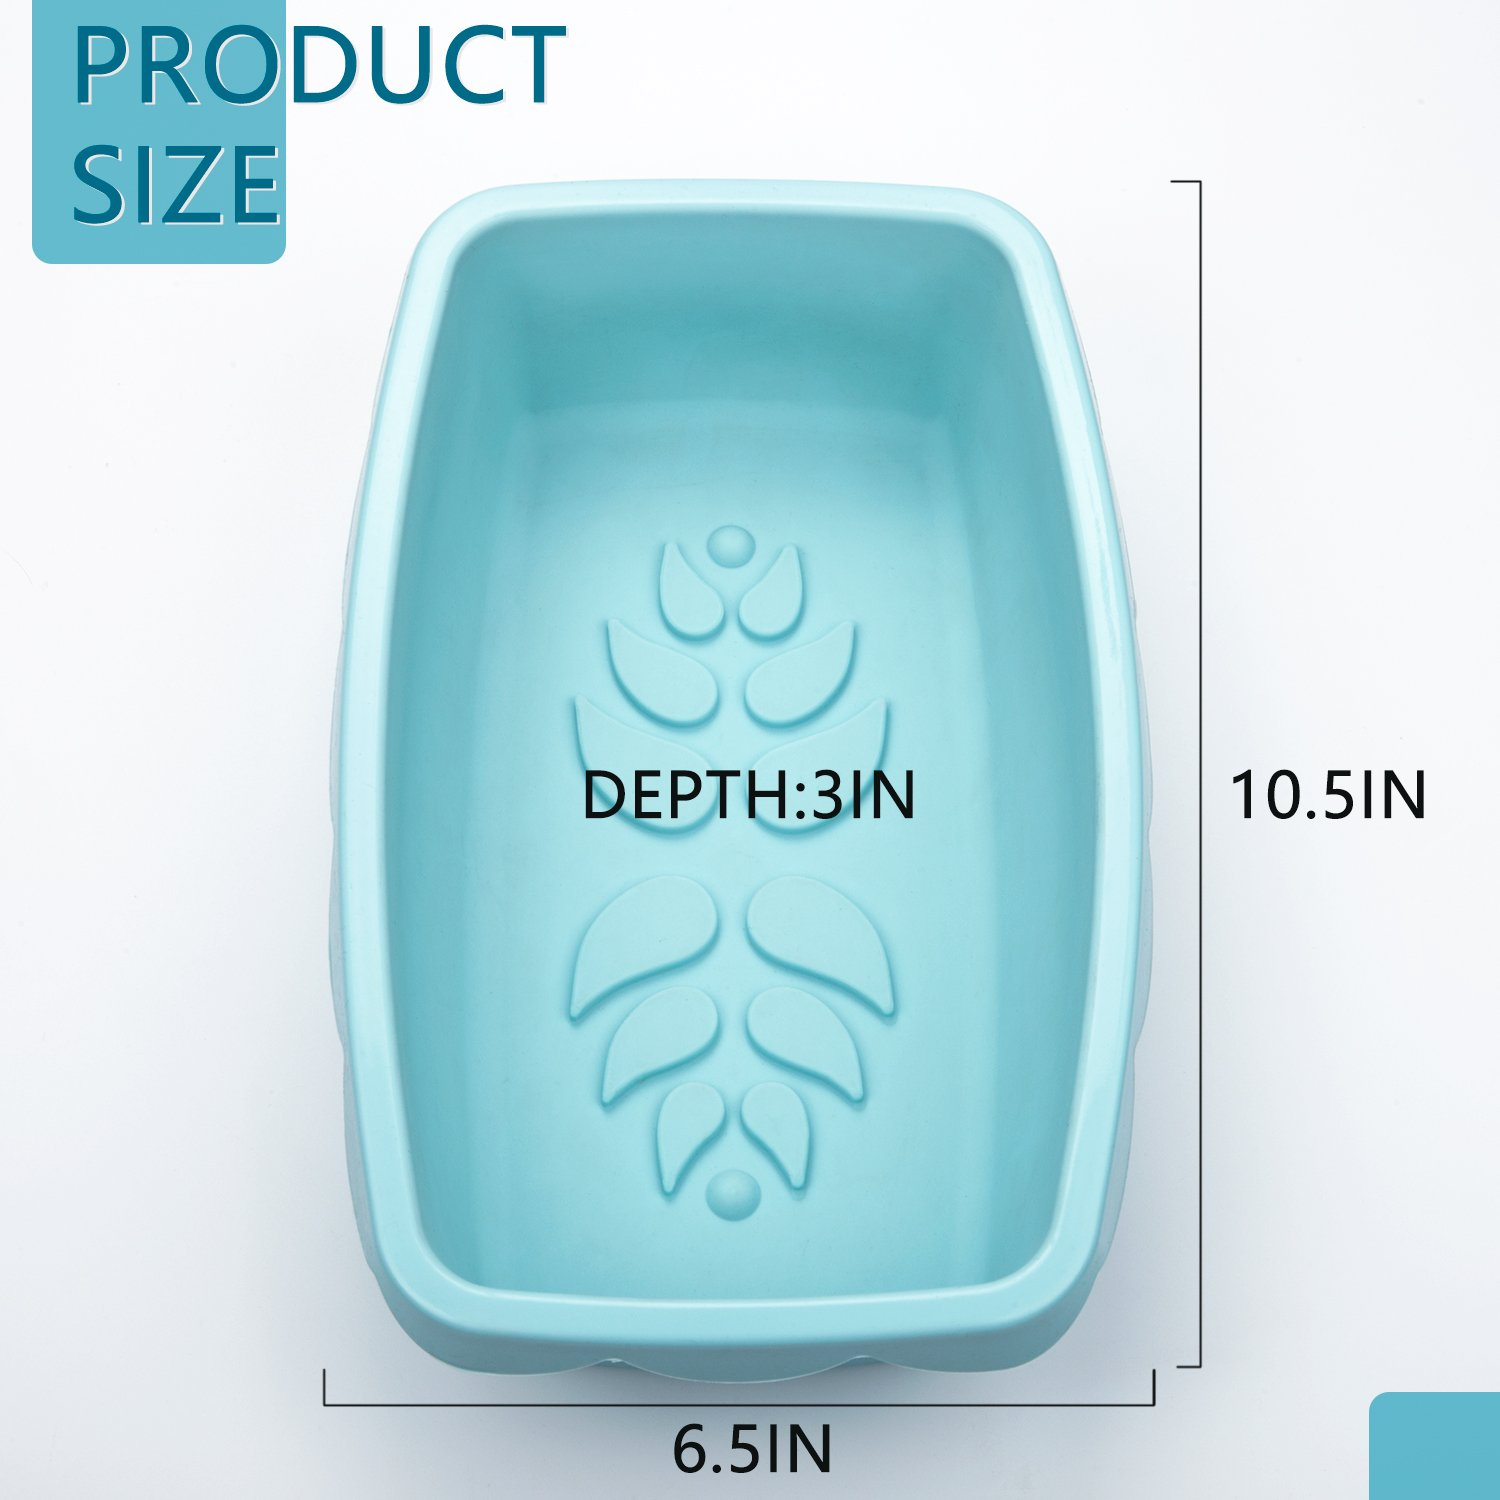 Silicone Loaf Pan Nonstick Bread Cake Baking Mold Rectangular with Decorative Pattern for Homemade Cakes Breads Meatloaf - 10.5 x 6.5 x 3.0 Inch - Microwave Dishwasher Safe, BPA Free by DOSHH (Image #2)